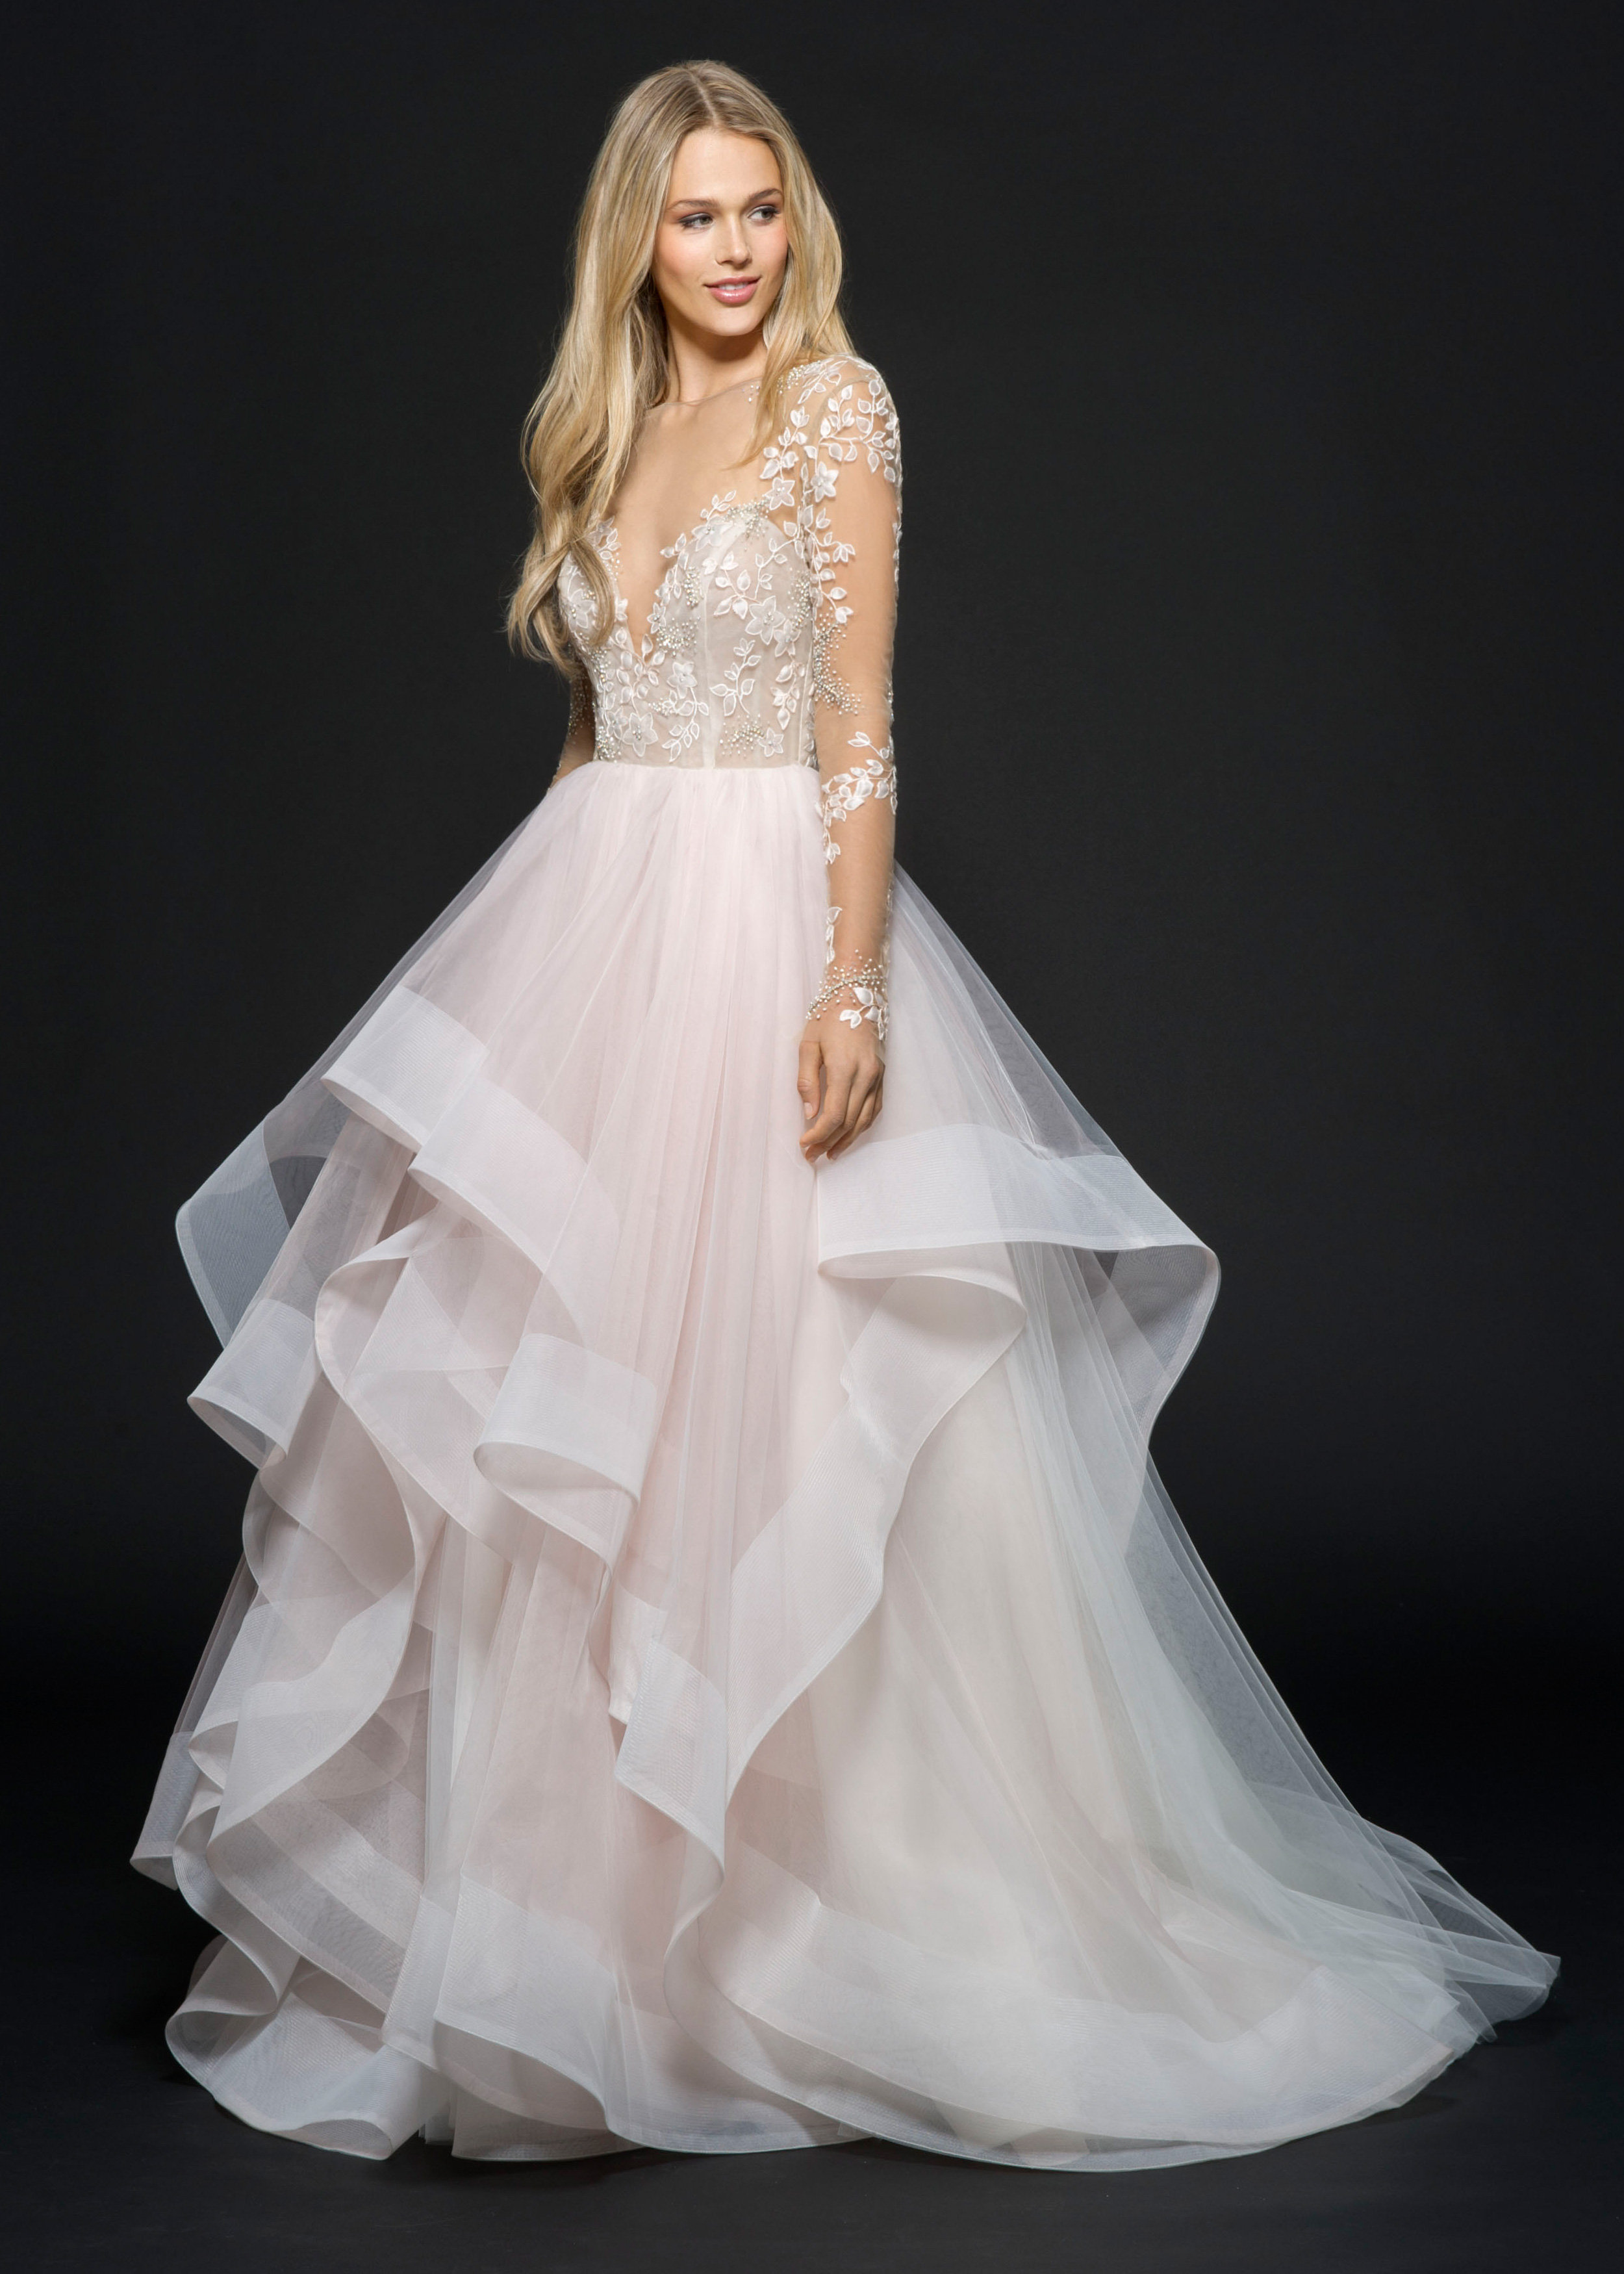 Bridal Gowns And Wedding Dresses By Jlm Couture Style